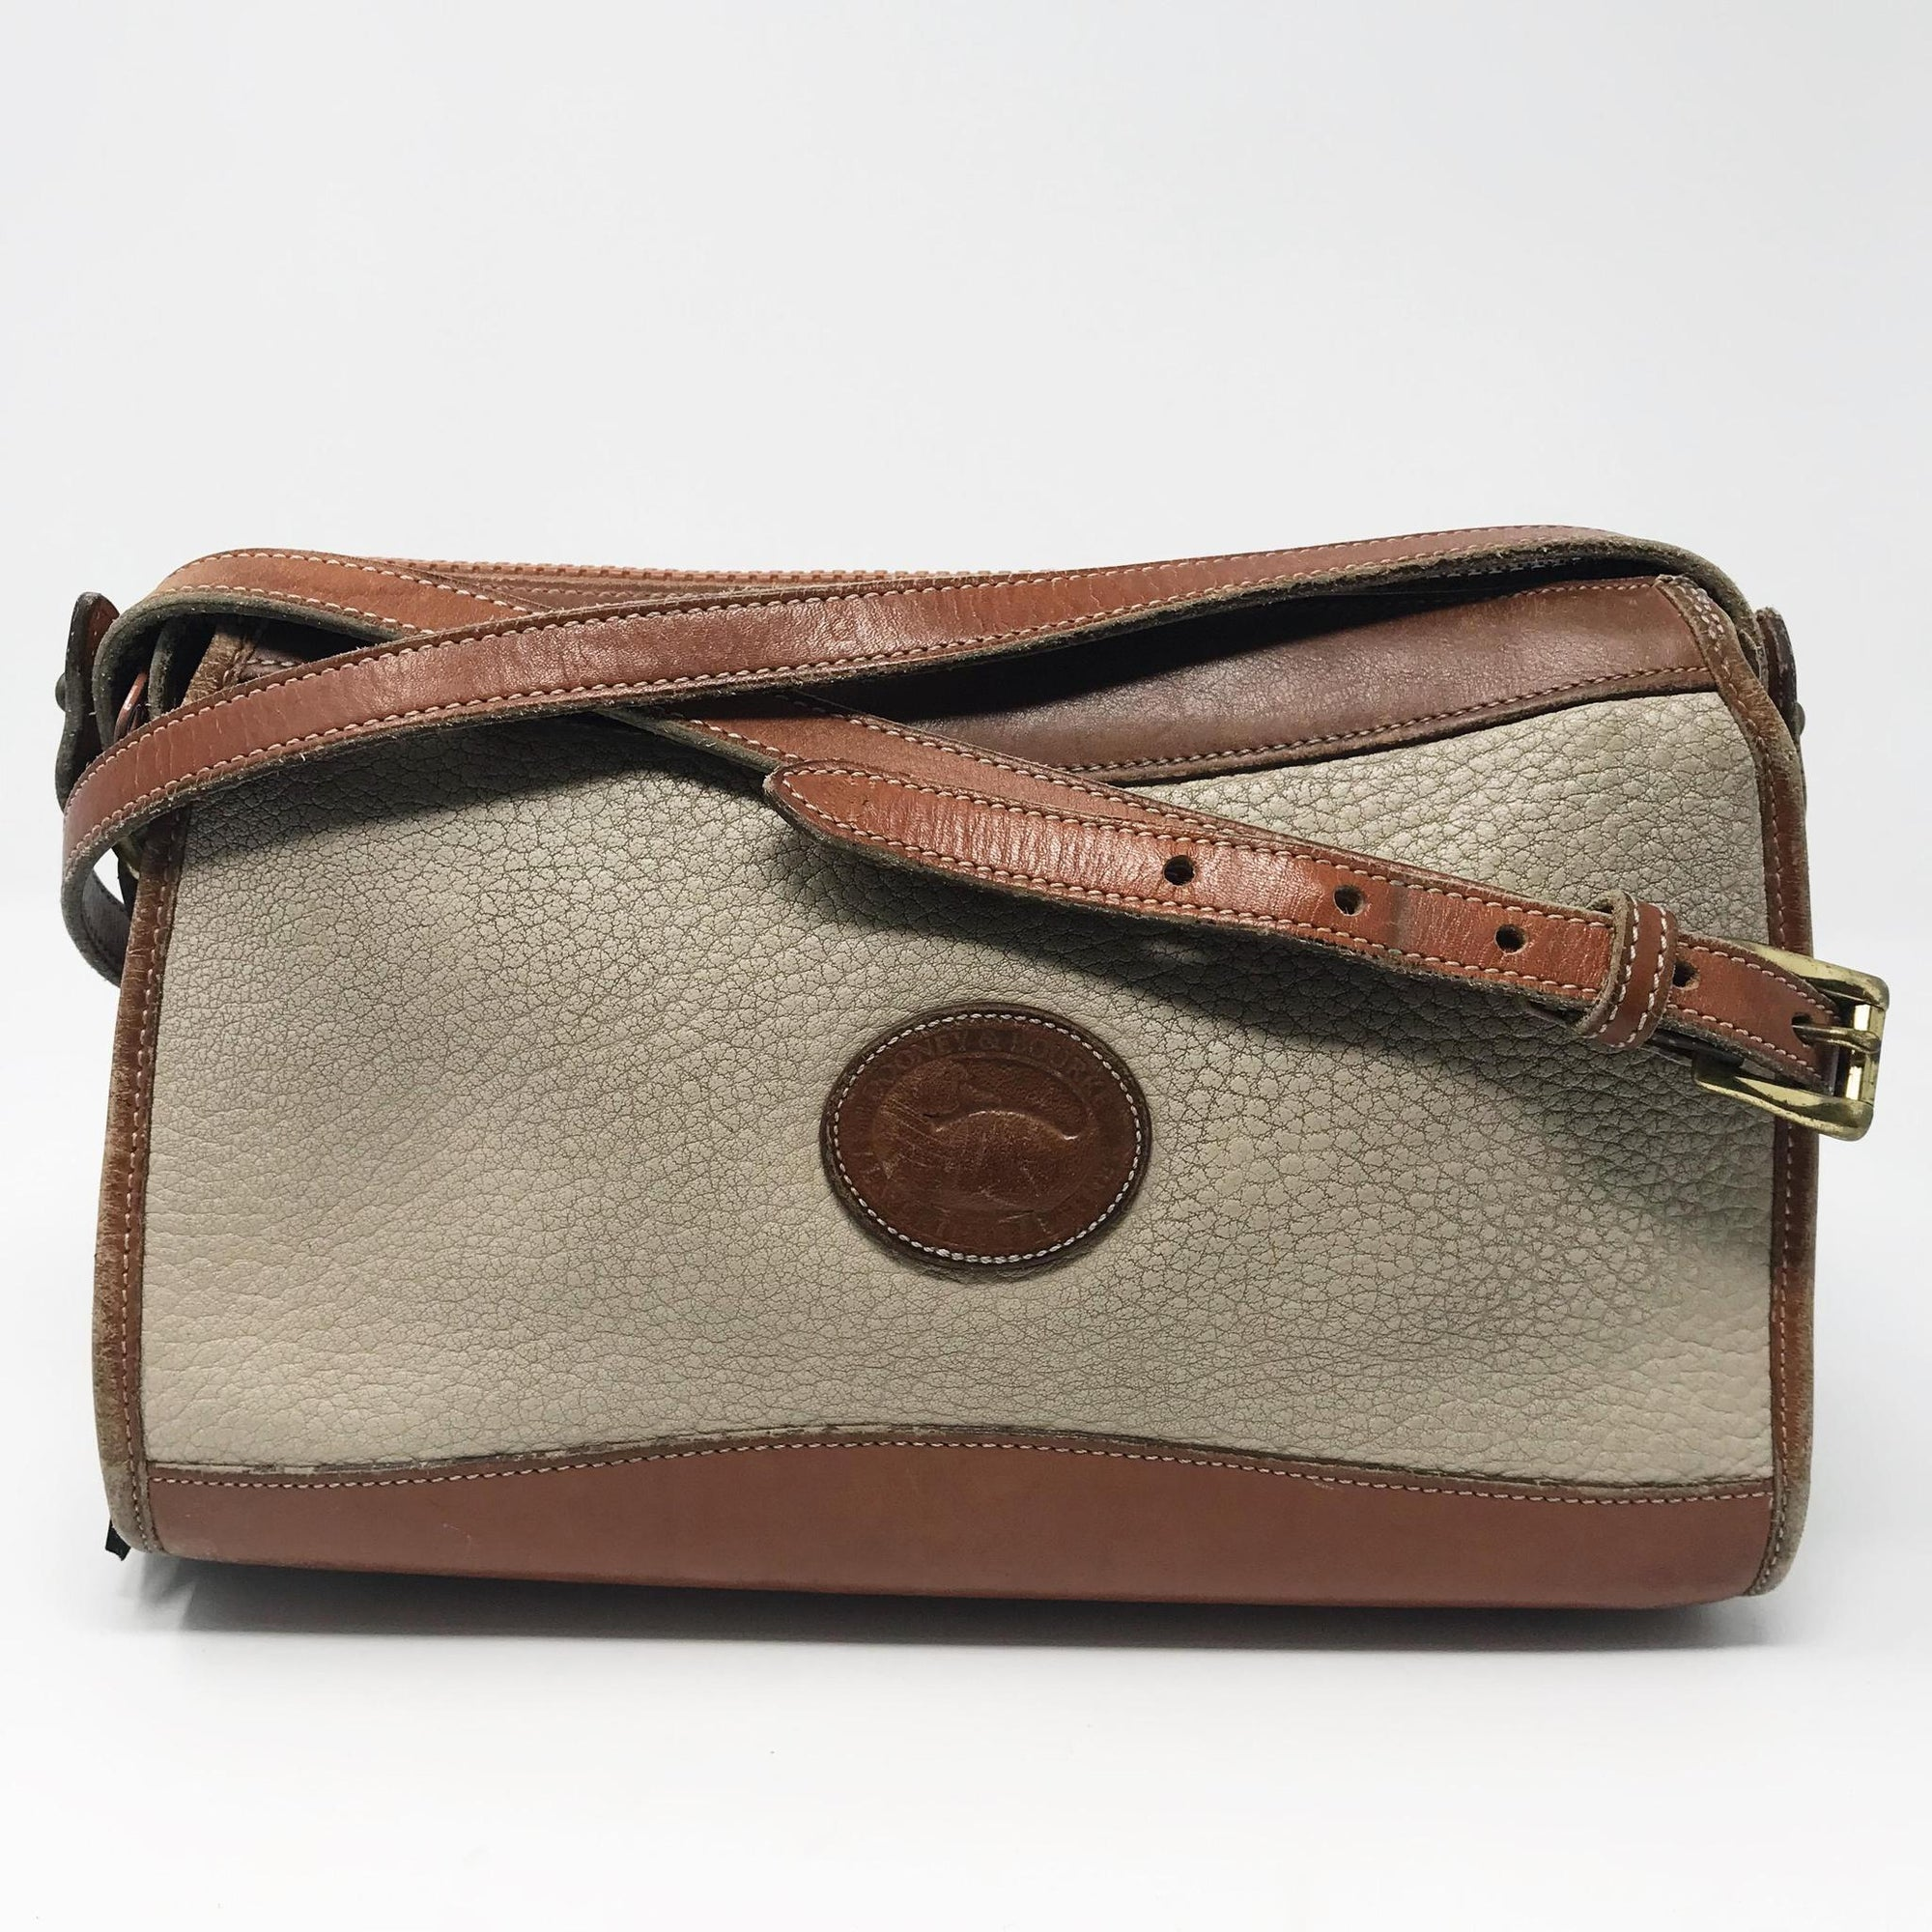 Vintage Taupe Dooney & Bourke Crossbody Bag